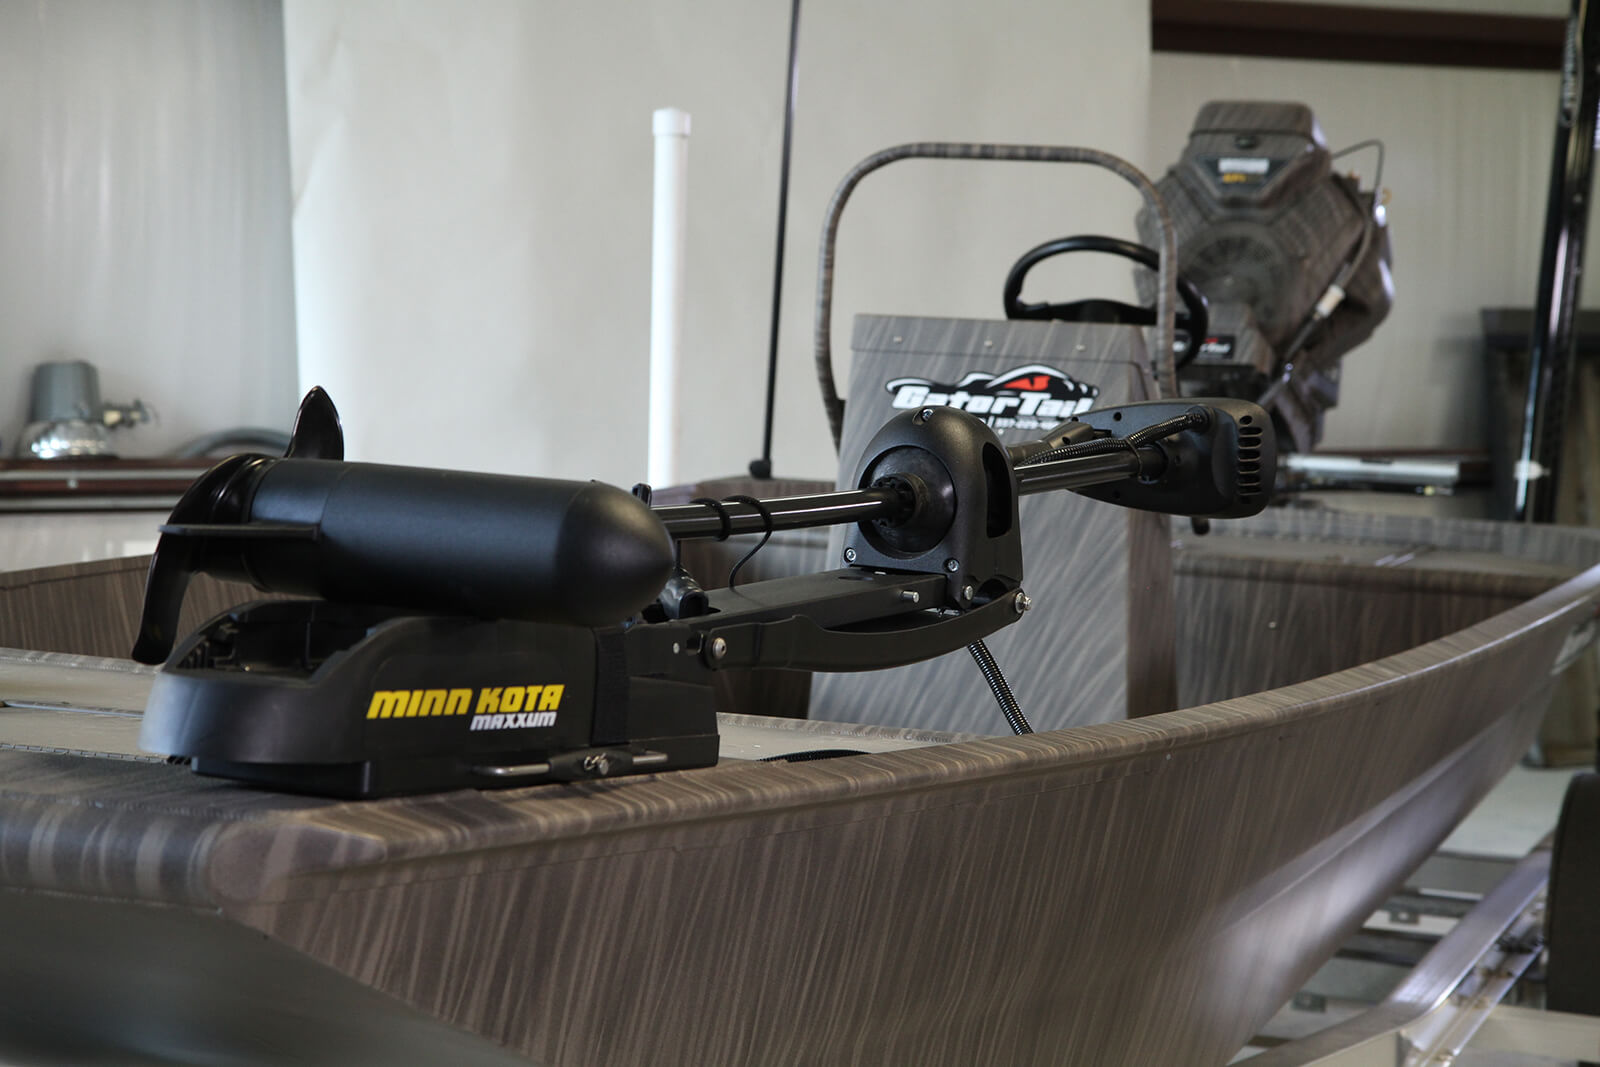 Gator Series Gator Tail: aluminum boat and motor packages